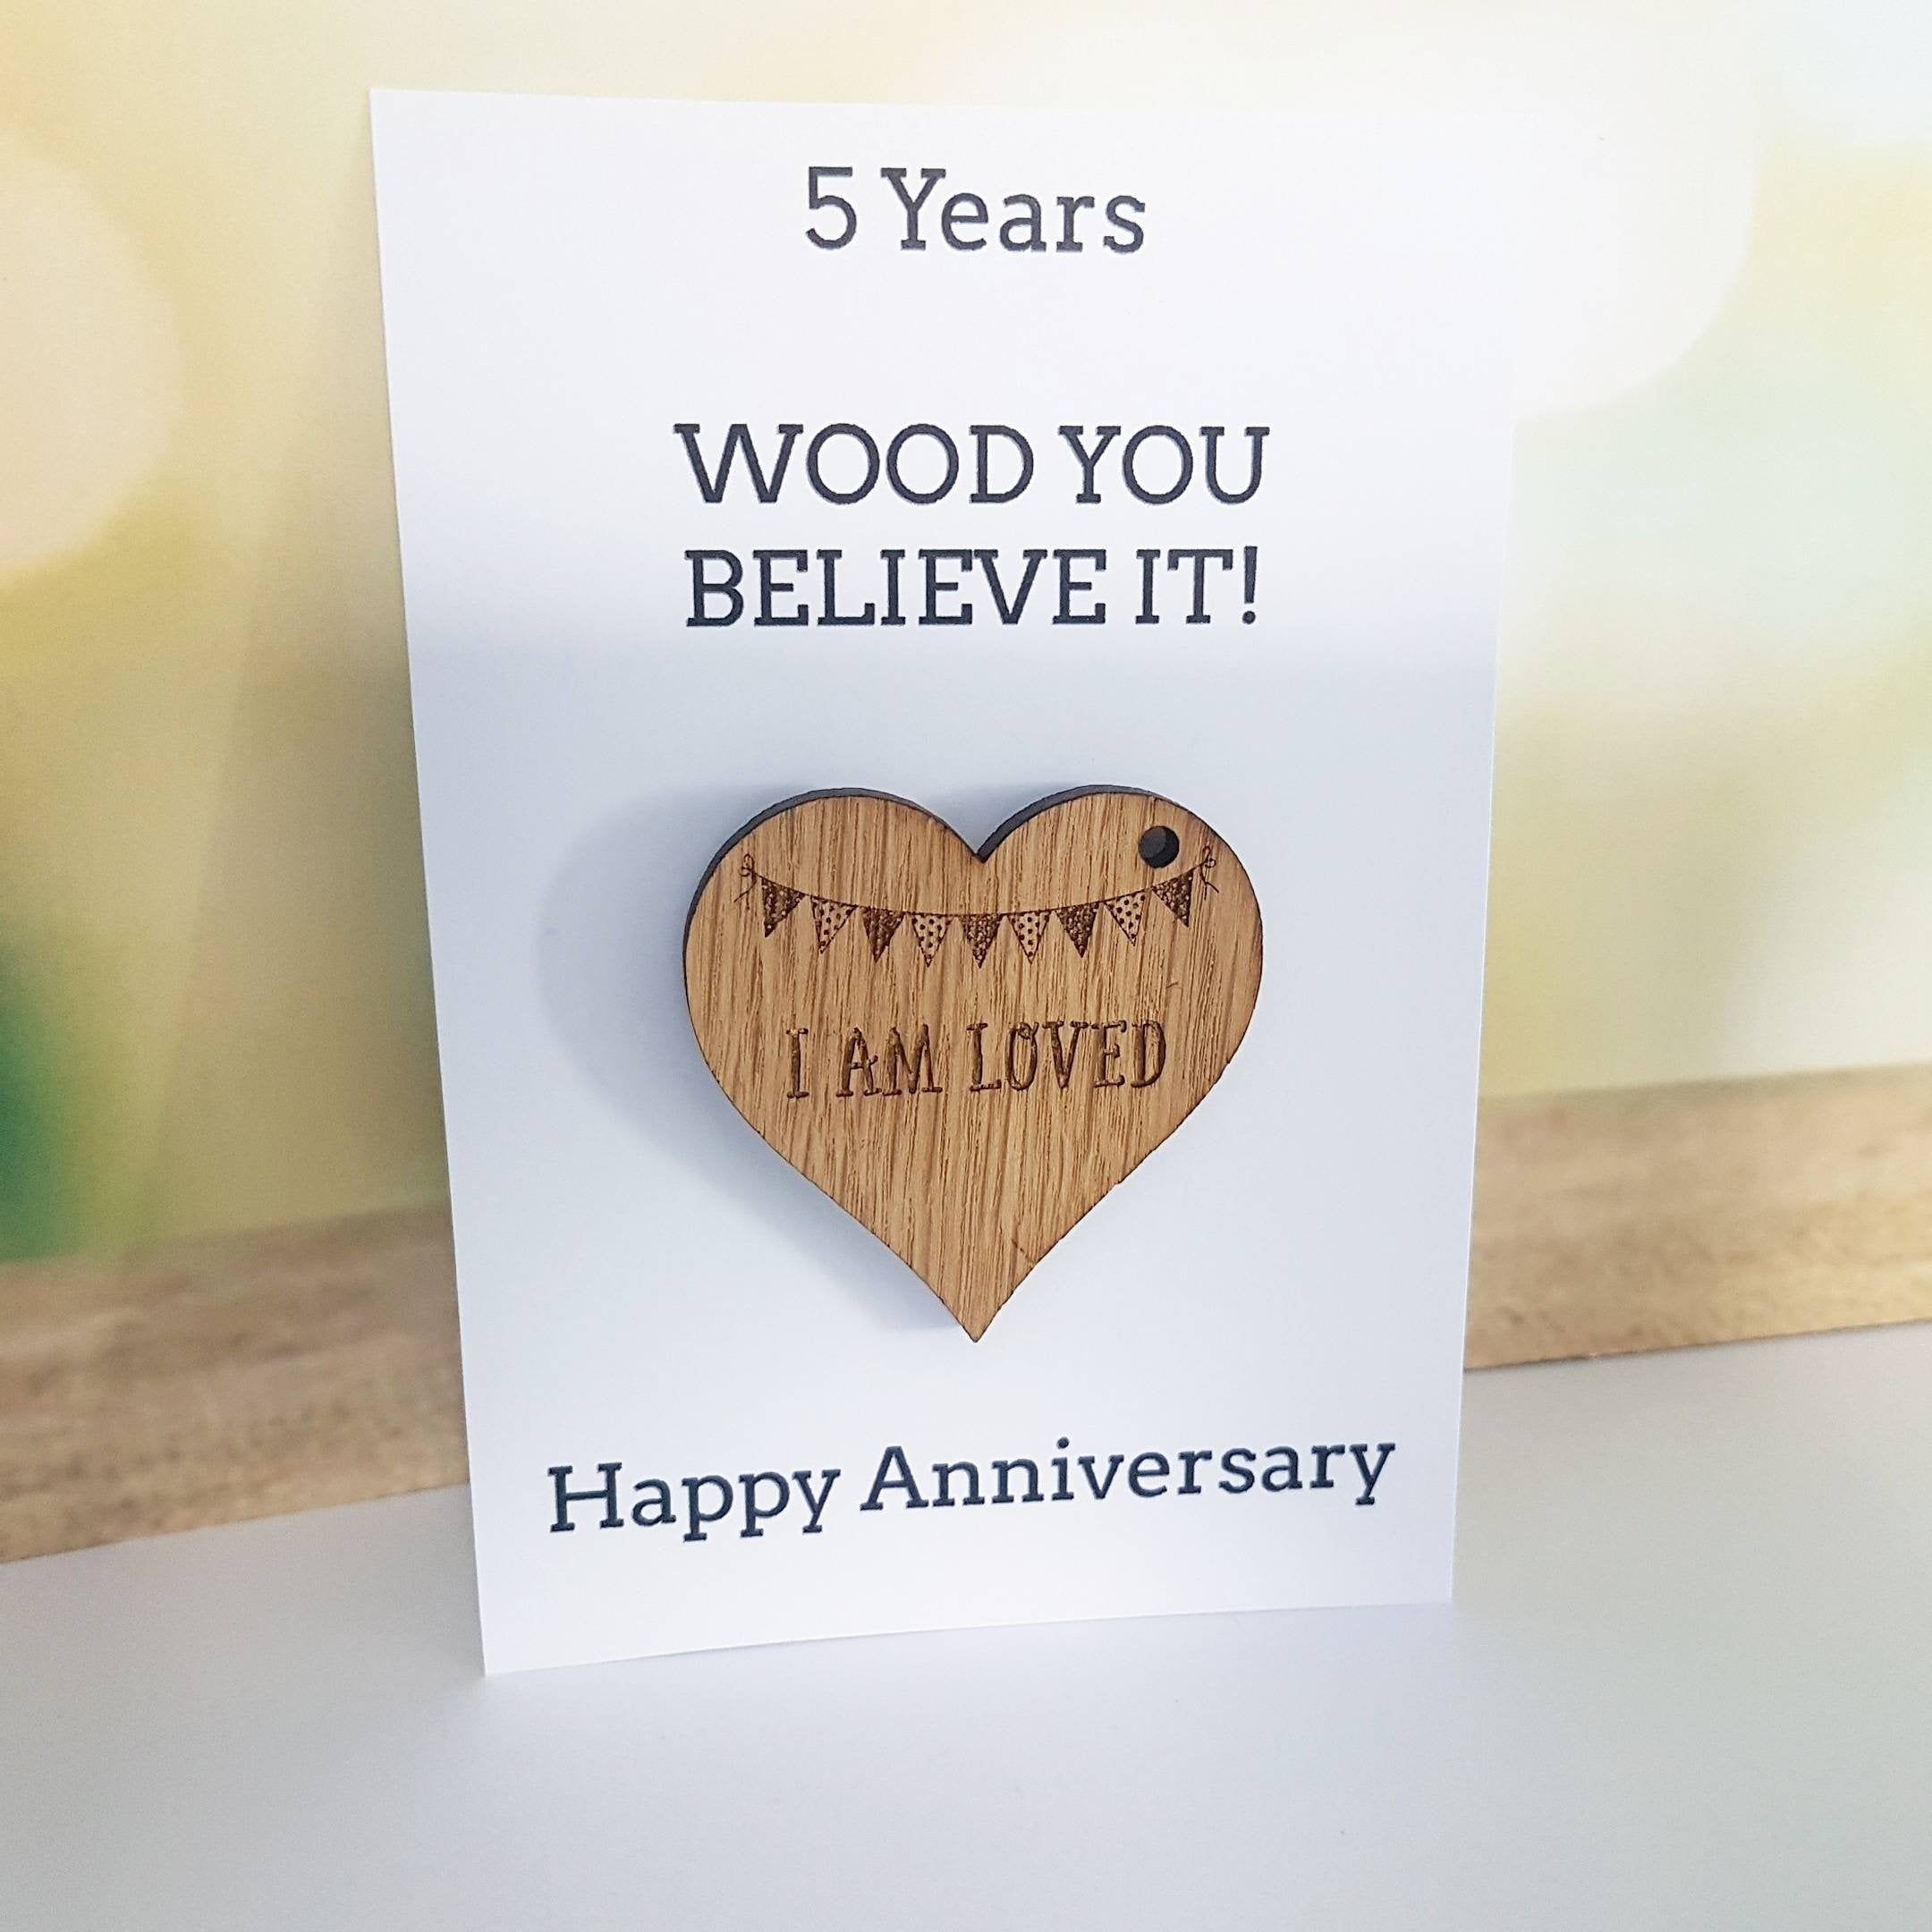 5th Anniversary Card Husband Gift Wife Card Wood Wooden Gift Wedding Anniversary Gift For He Gift Wedding Anniversary Gifts For Husband Anniversary Cards